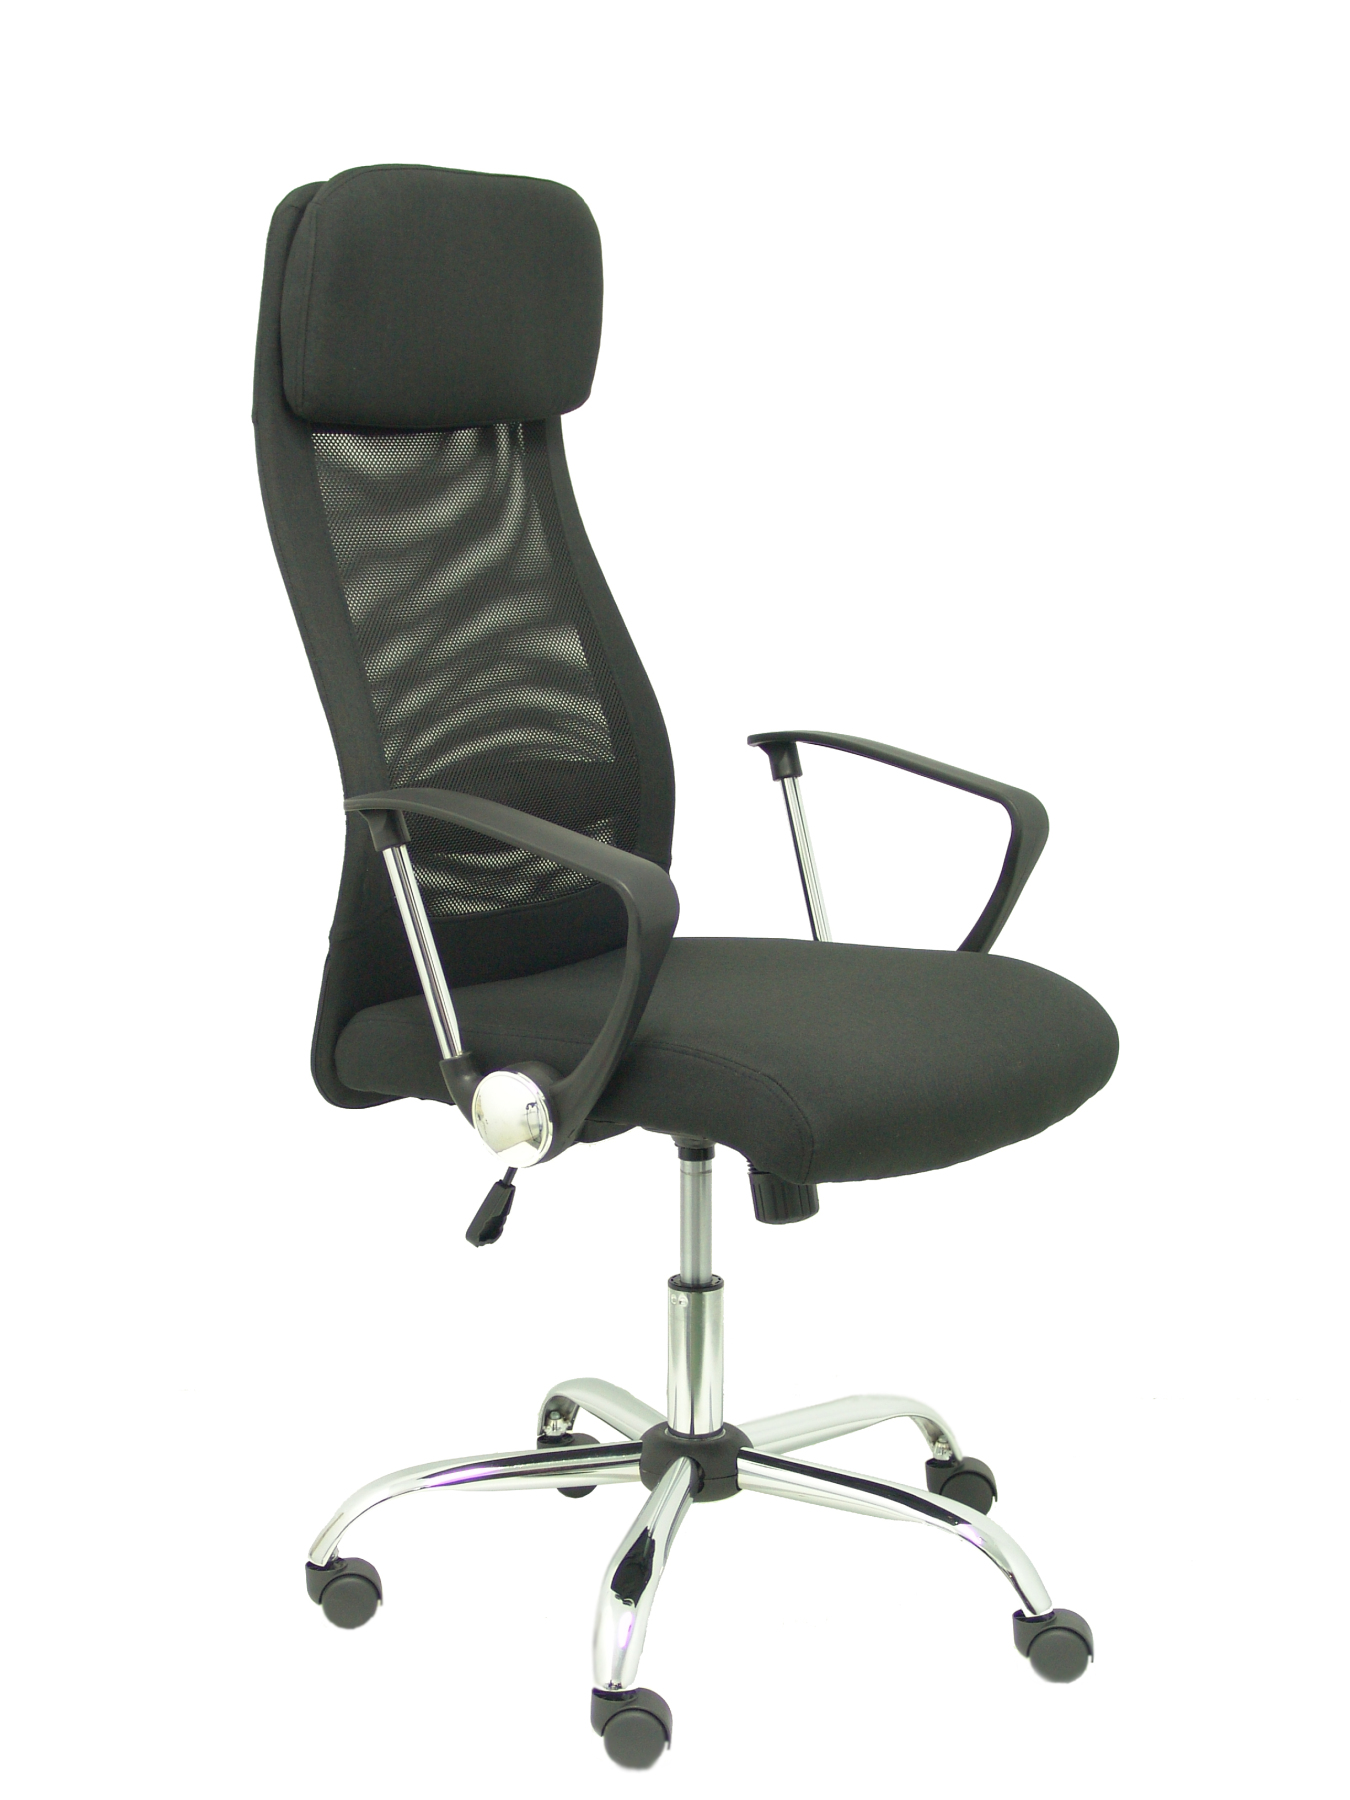 Chair Address Ergonomic With Mechanism Swingarm, Fixed Arms And Adjustable Height-Backing Mesh Transpi